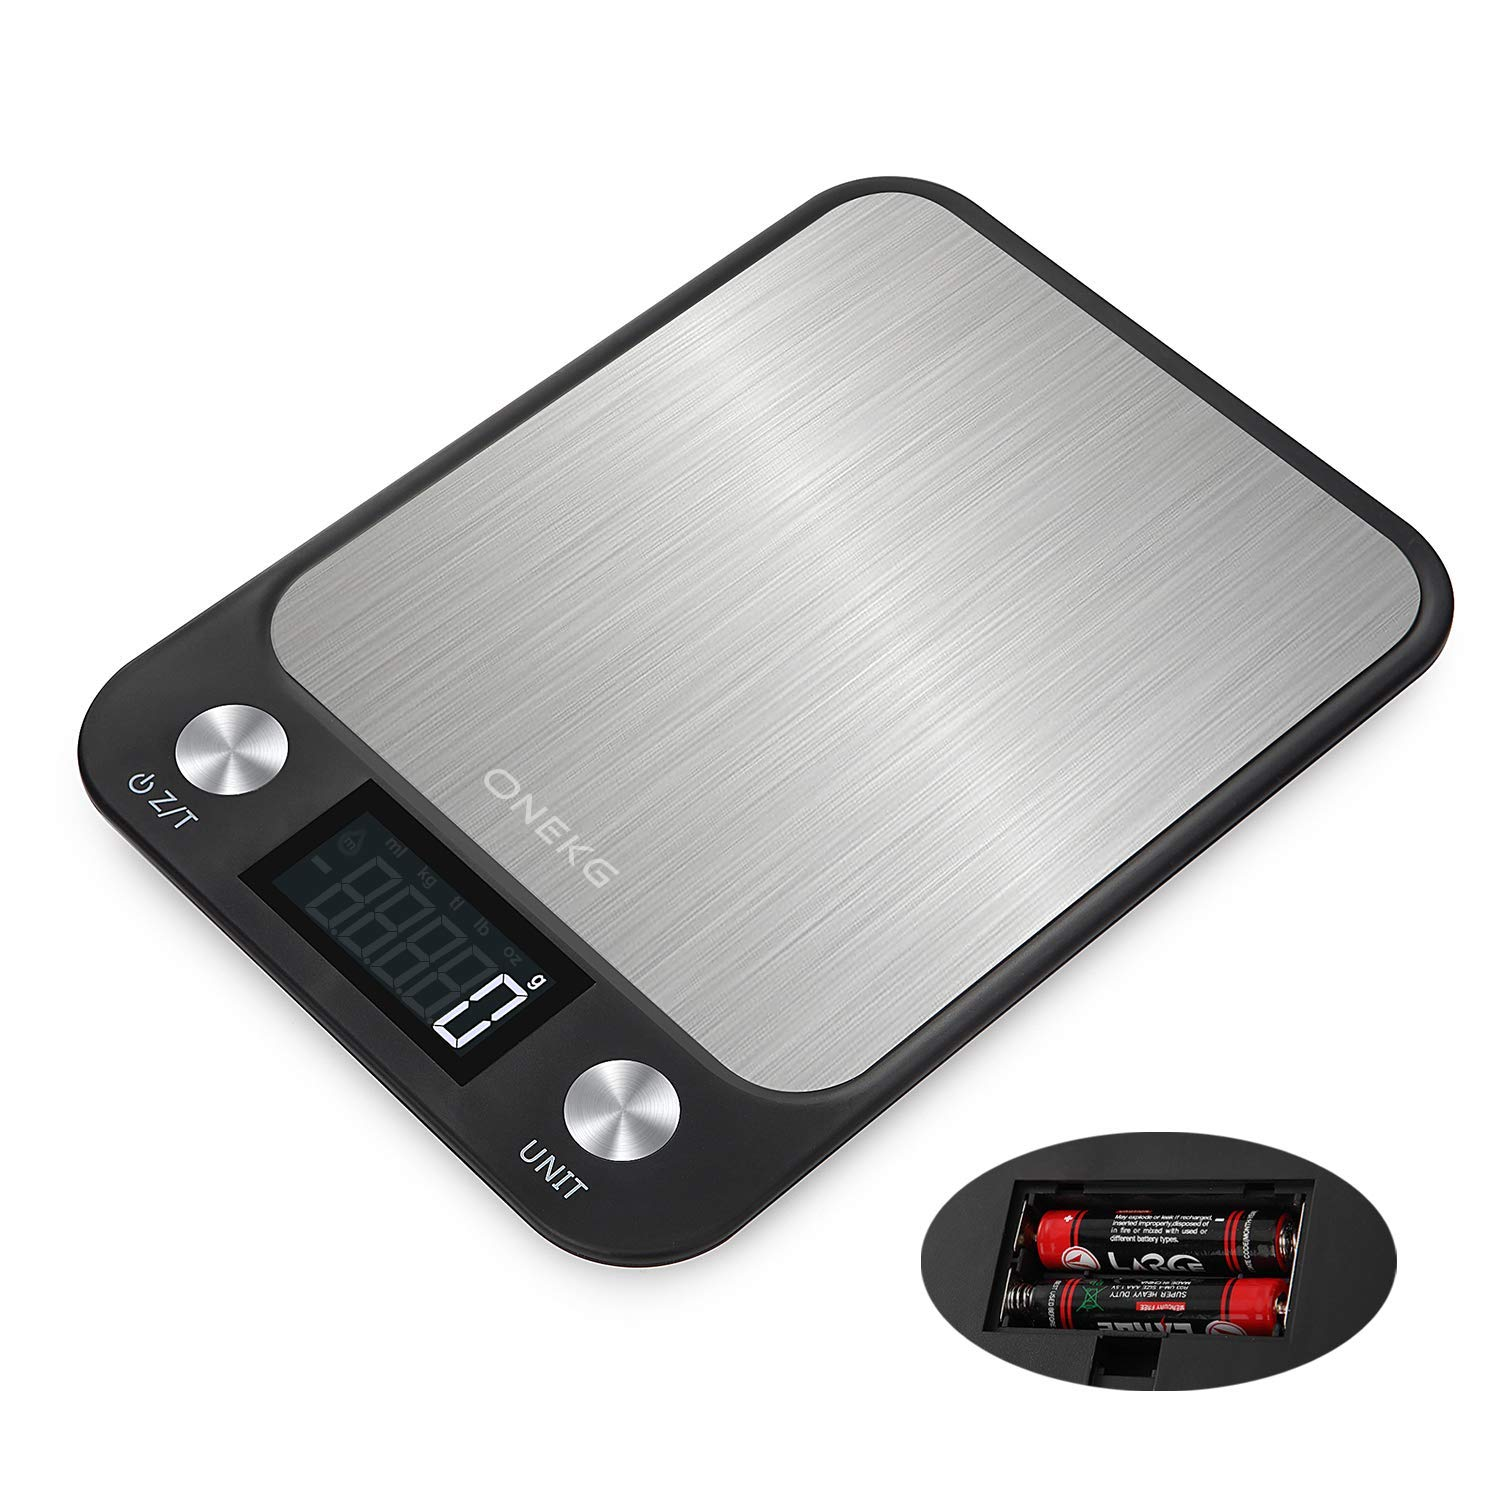 ONEKG Digital Food Kitchen Scale, 7 Units LCD Display Scale in KG, G, oz, lb, tl, ml and ml(Milk), Max 11lbs/5kg Precise Scale for Cooking and Baking, Stainless Steel, Easy Clean (Batteries Included)